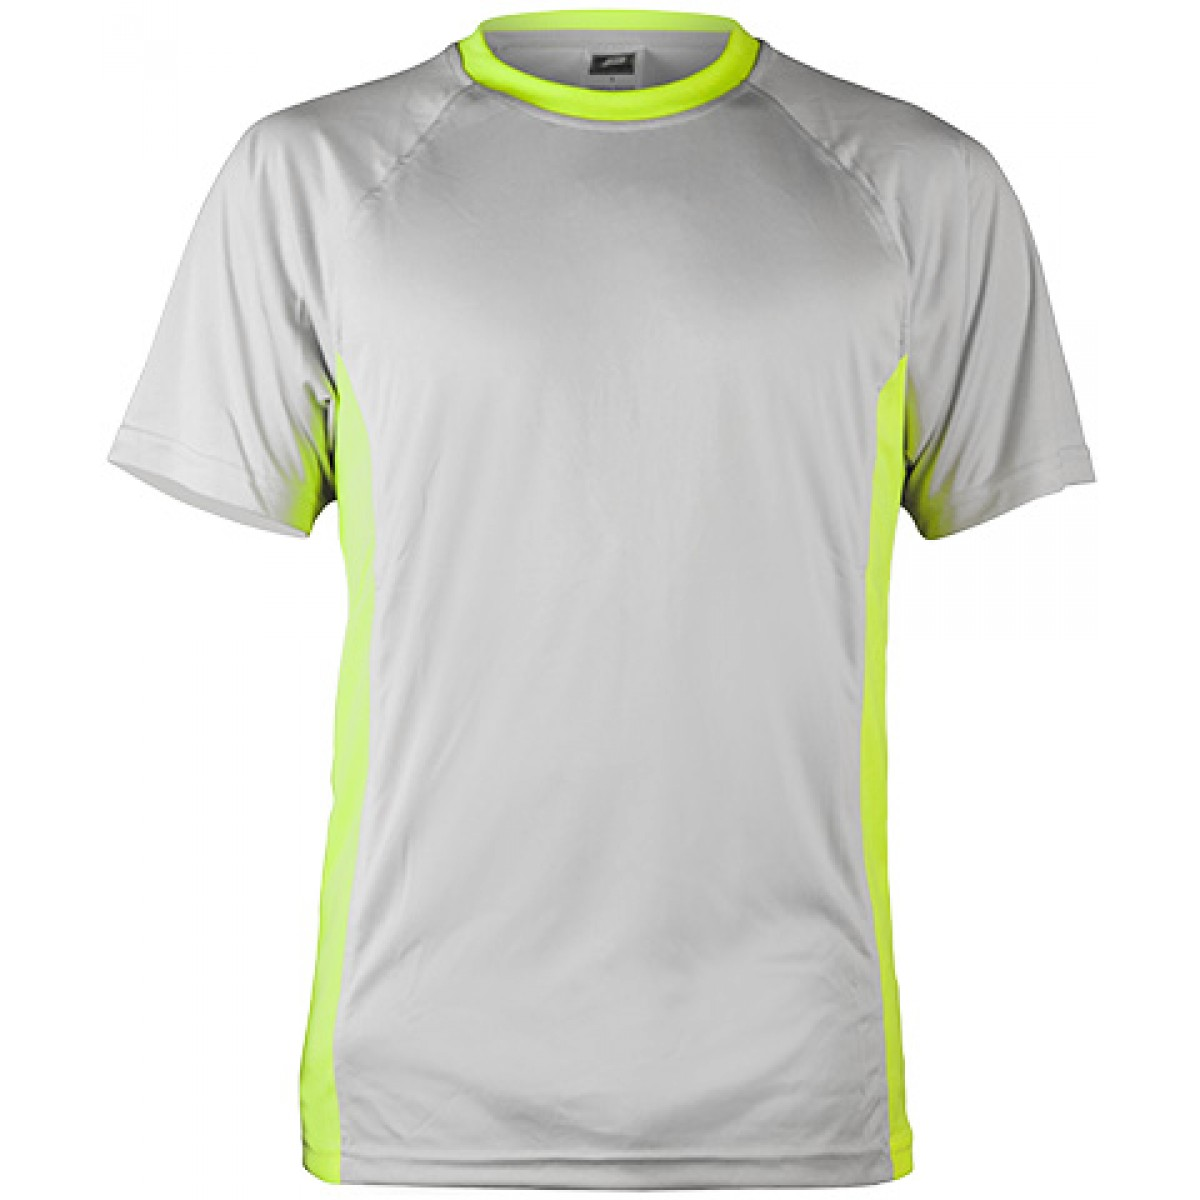 Short Sleeve Performance Fit with Flat-back Mesh Side Insert-Gray/Green-XL